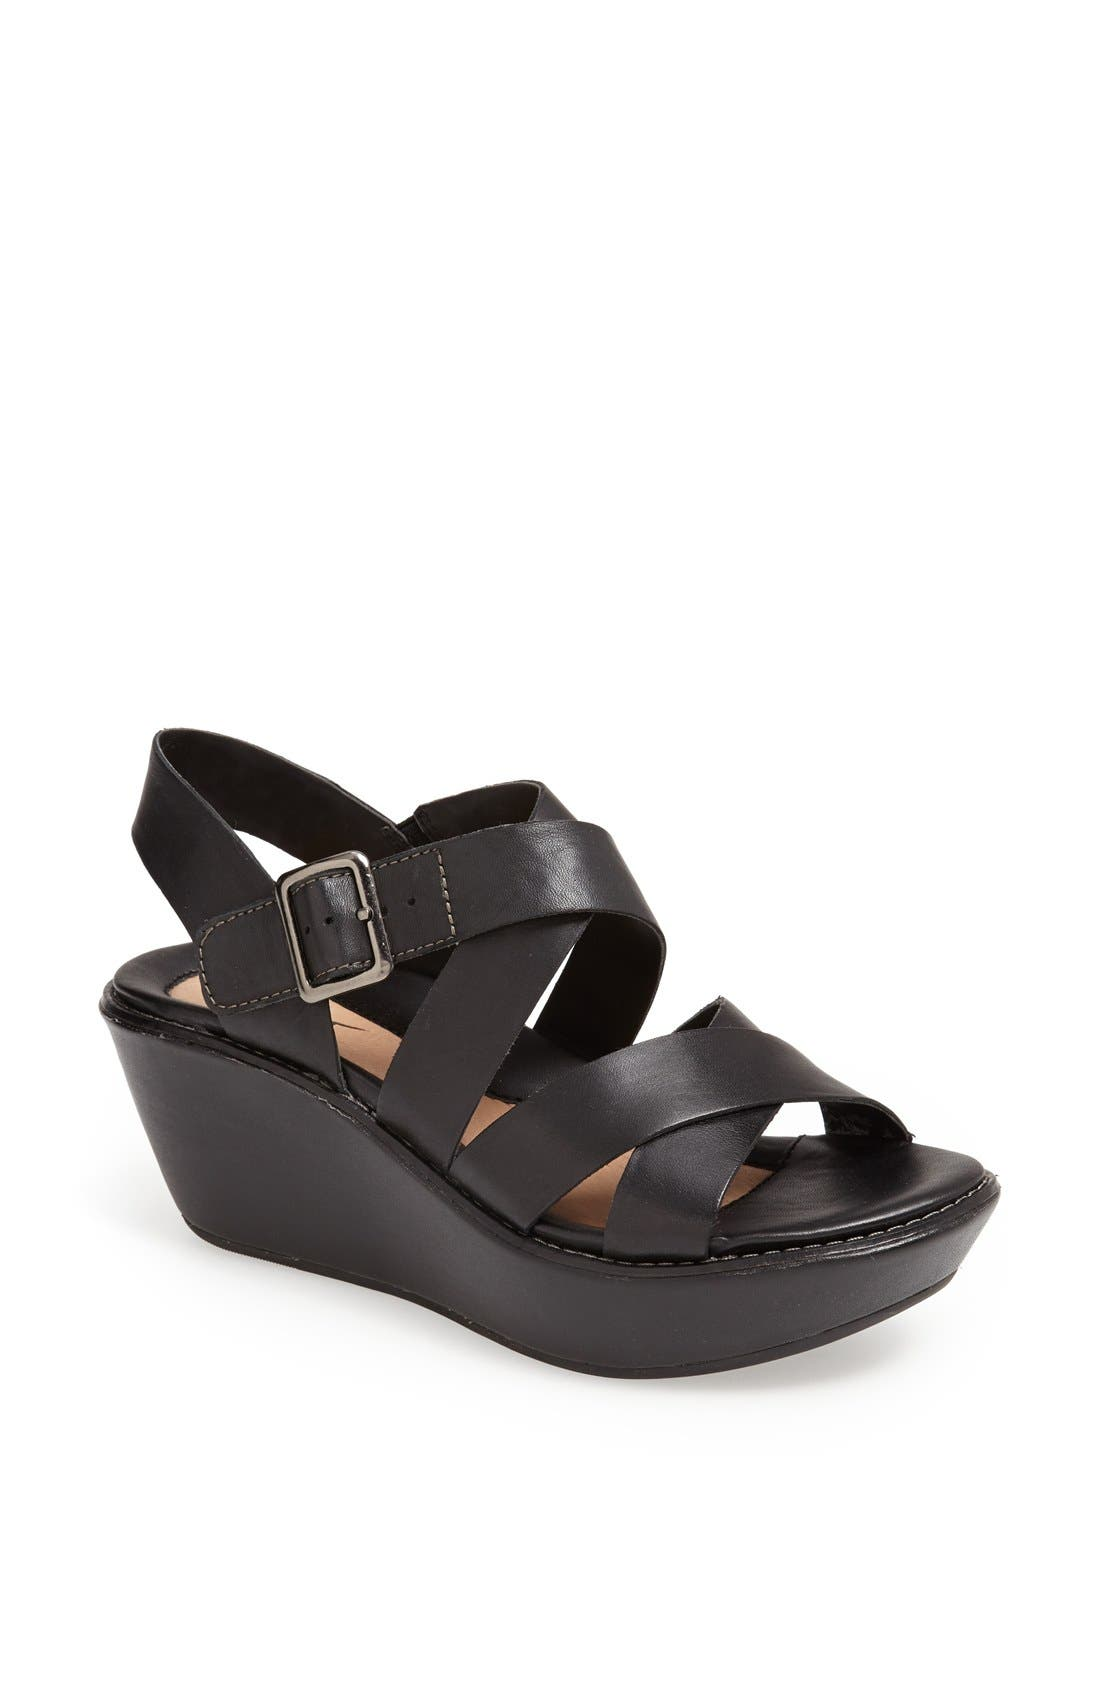 Main Image - Earth 'Posy' Sandal